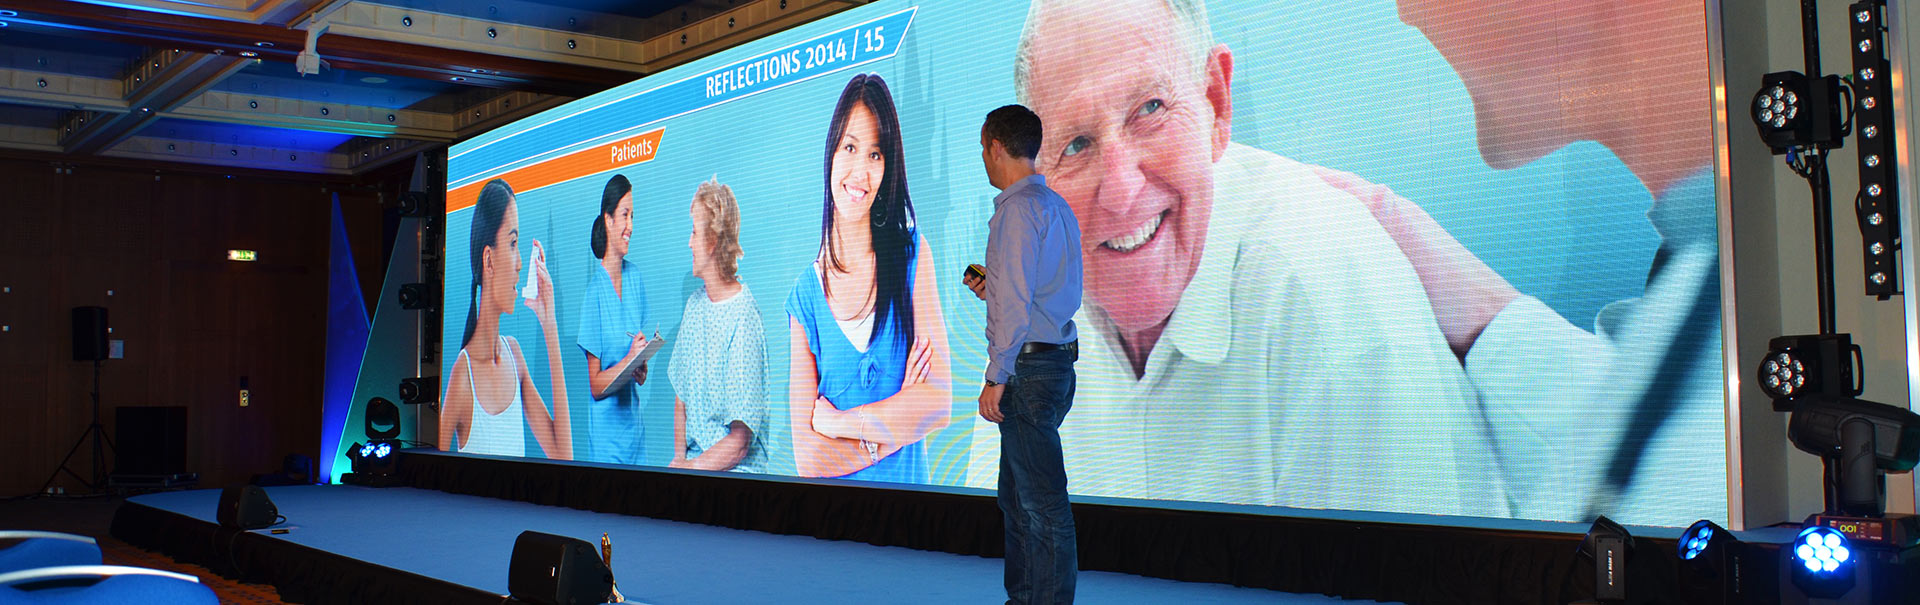 Conference Big Screens Projection And Av In London